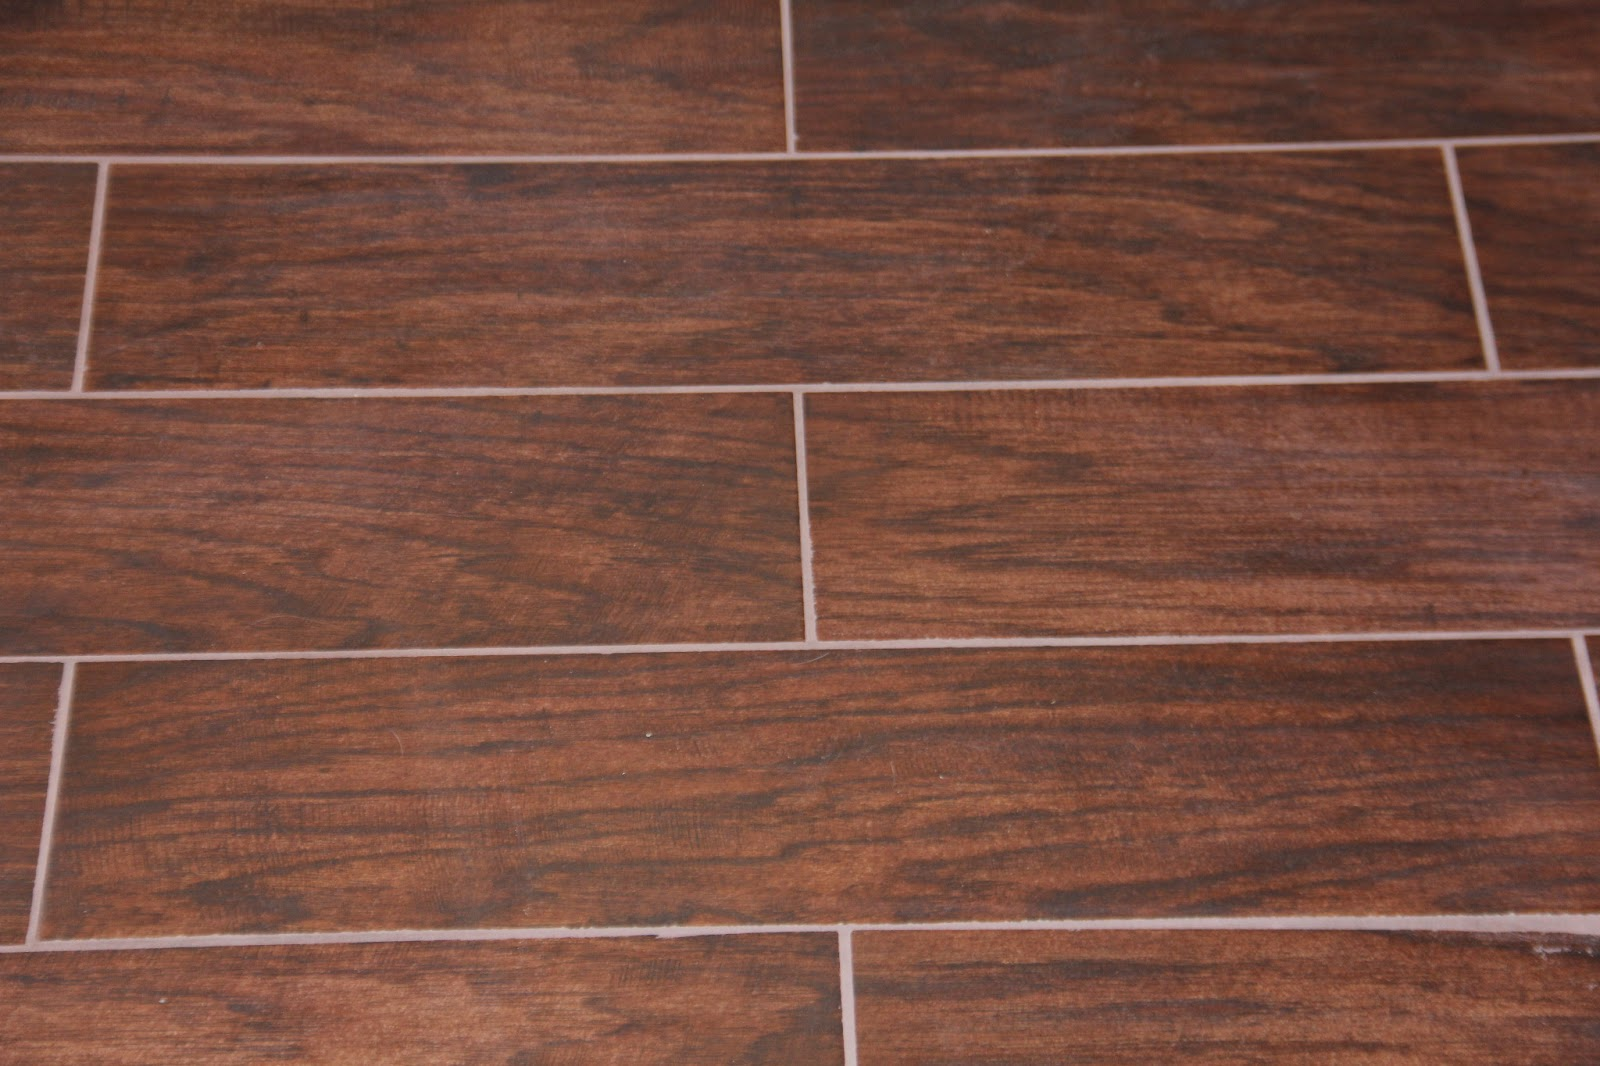 Grouting colour for wood effect tile boards http2bpspot mrtdiahzv8ucuvccnveuiaaaaaaaabeqjohkn6cwwvws1600img9585g dailygadgetfo Image collections